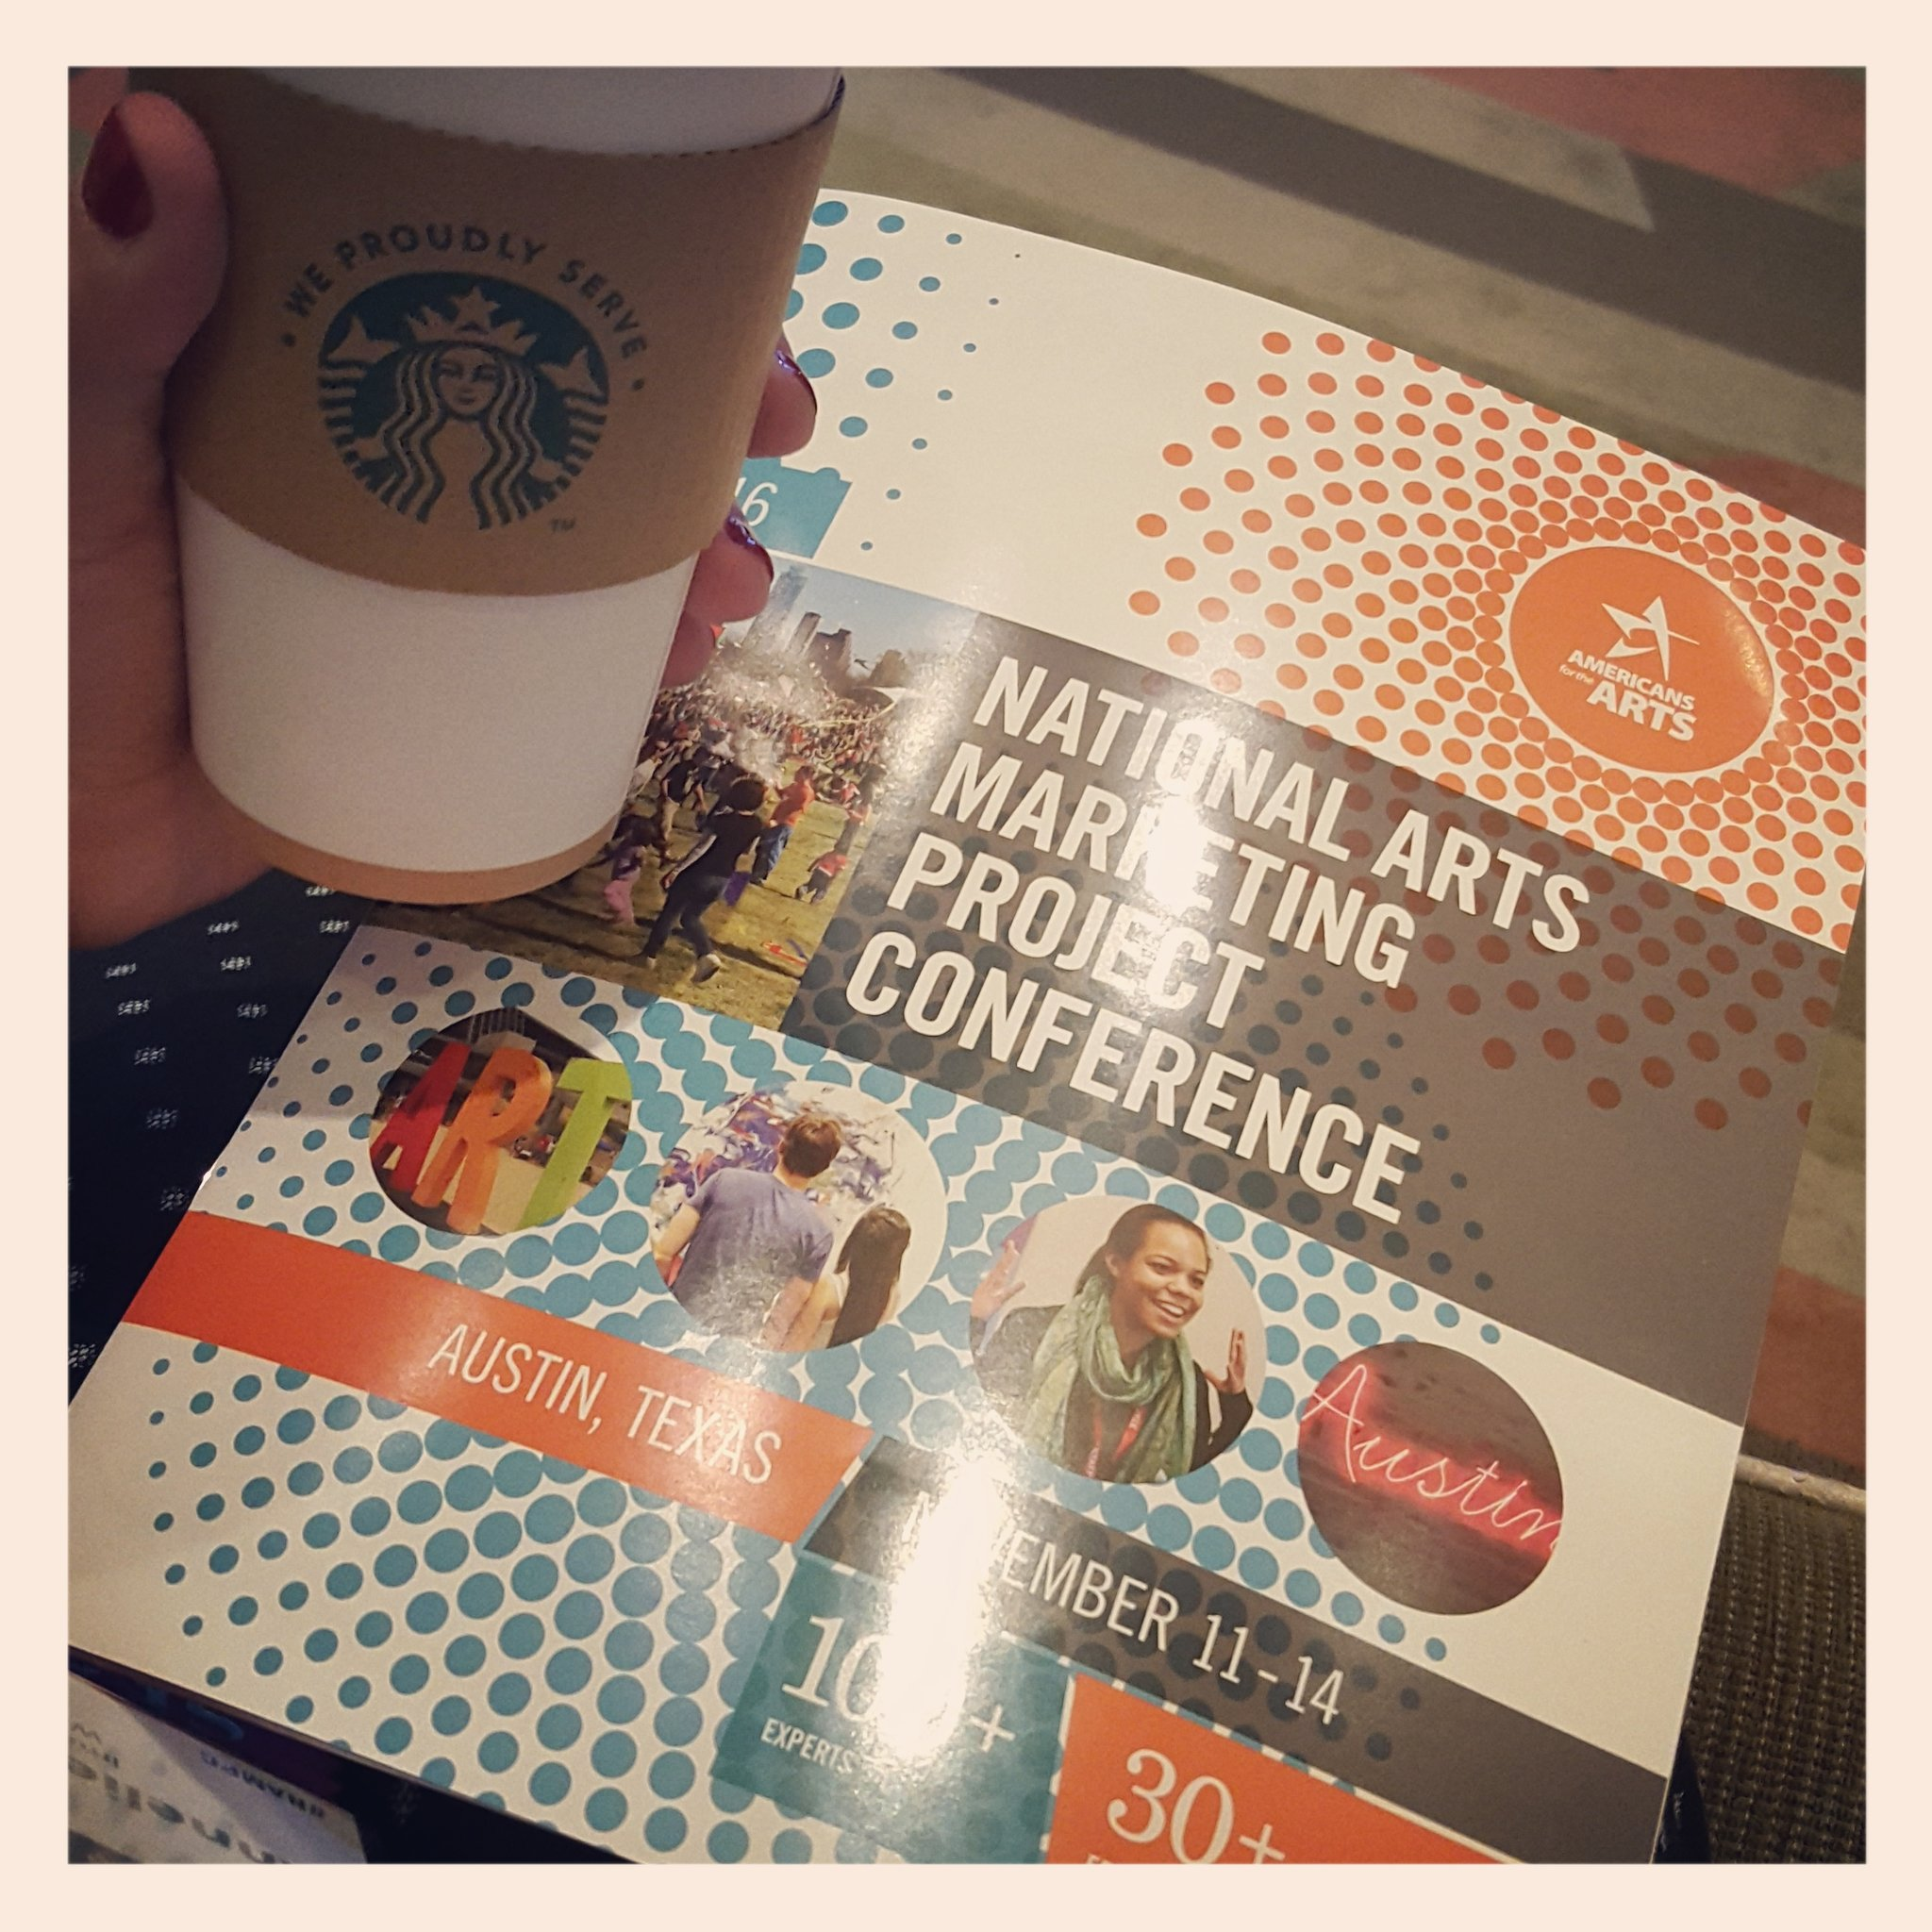 First full day at #NAMPC! 'Fueling up' with a little green tea. (See what I did there?) @Americans4Arts @artsmarketers #BreakingThrough https://t.co/0JJ5XPYNiH